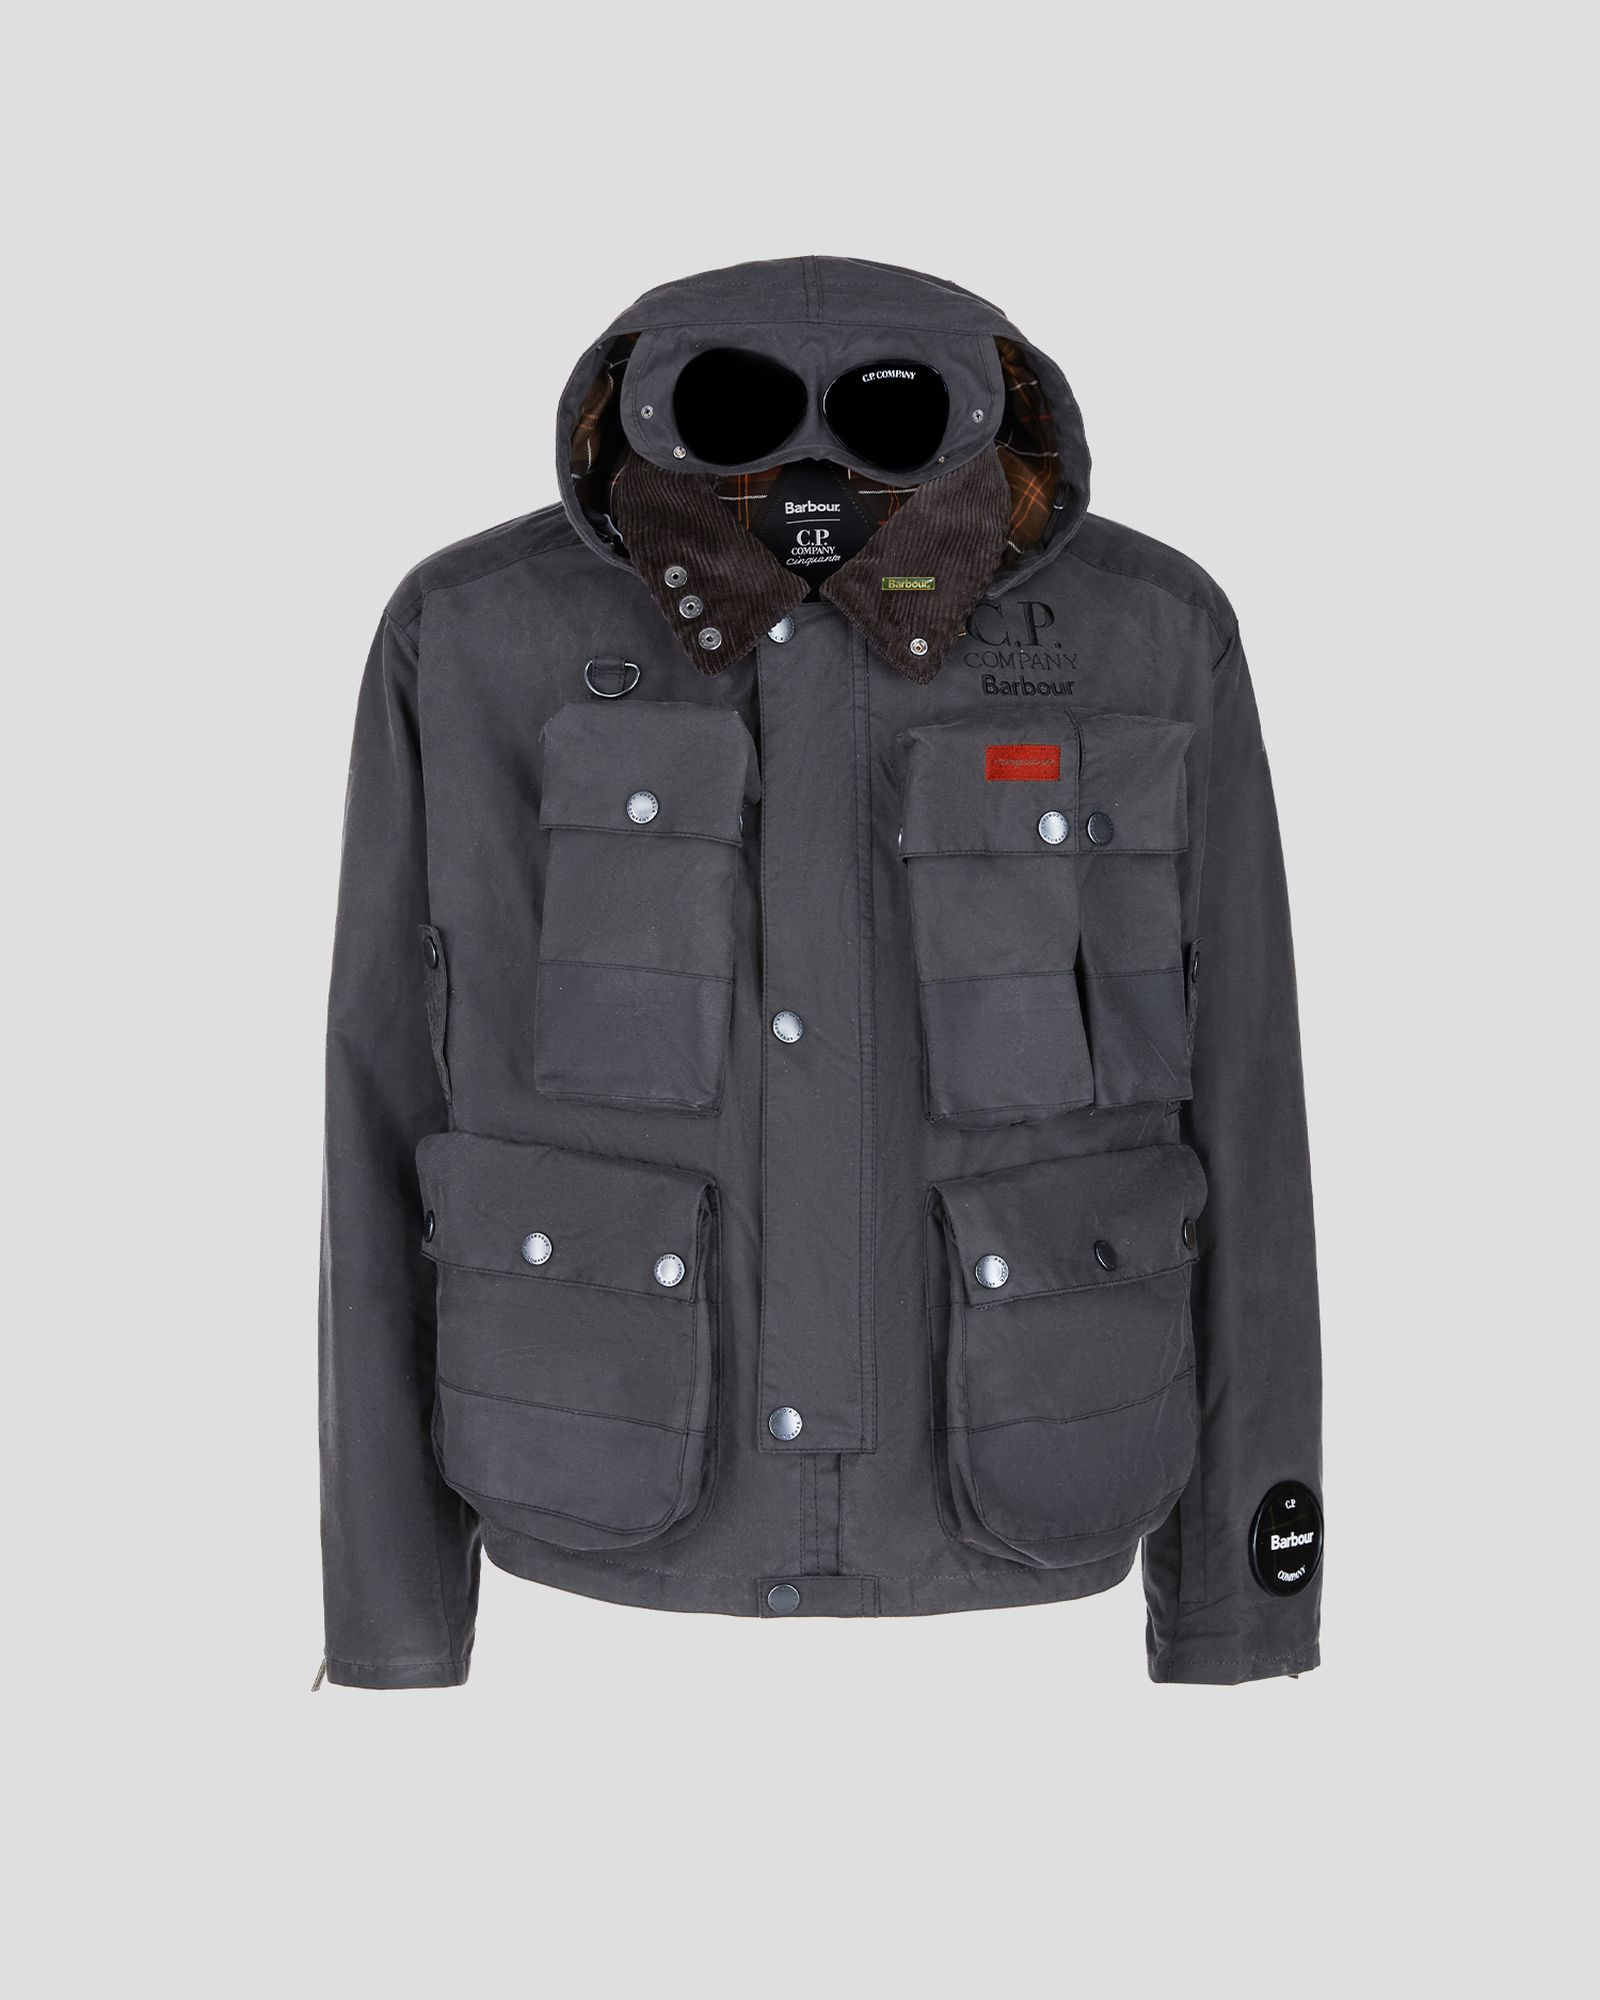 barbour-c-p-company-collection-release-information-2